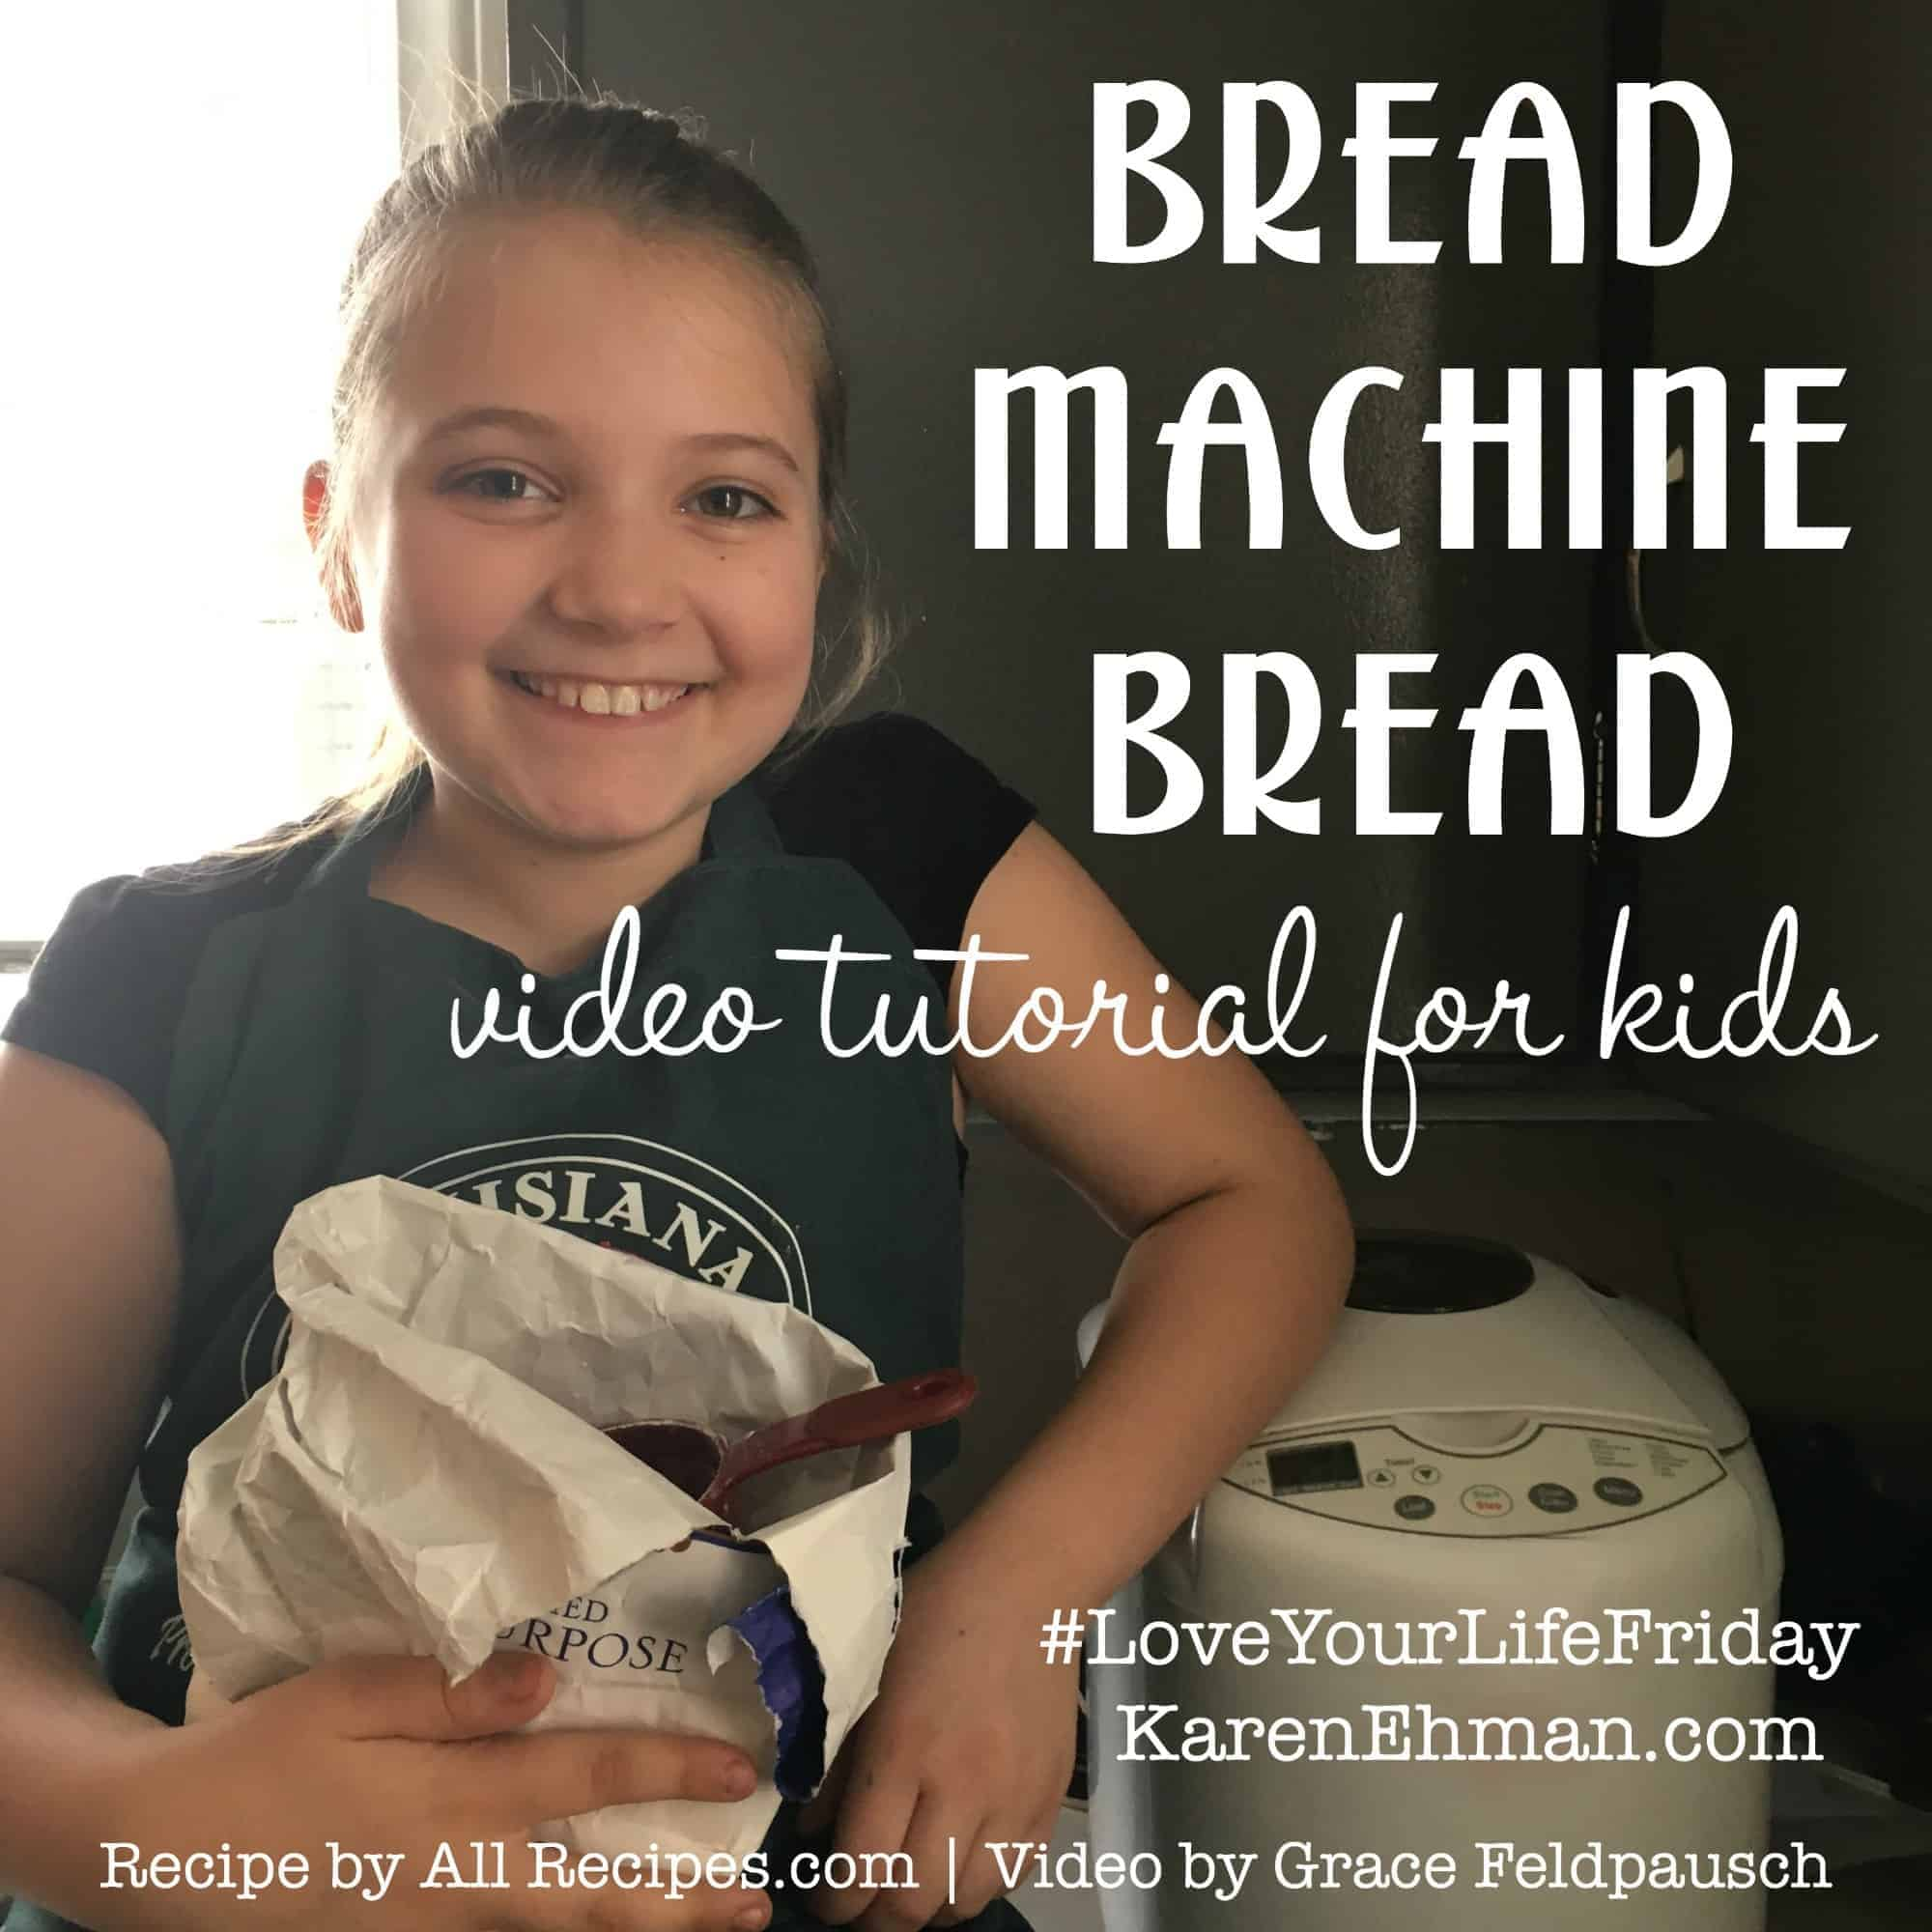 Bread Machine Bread Video Tutorial for Kids for #LoveYourLifeFriday